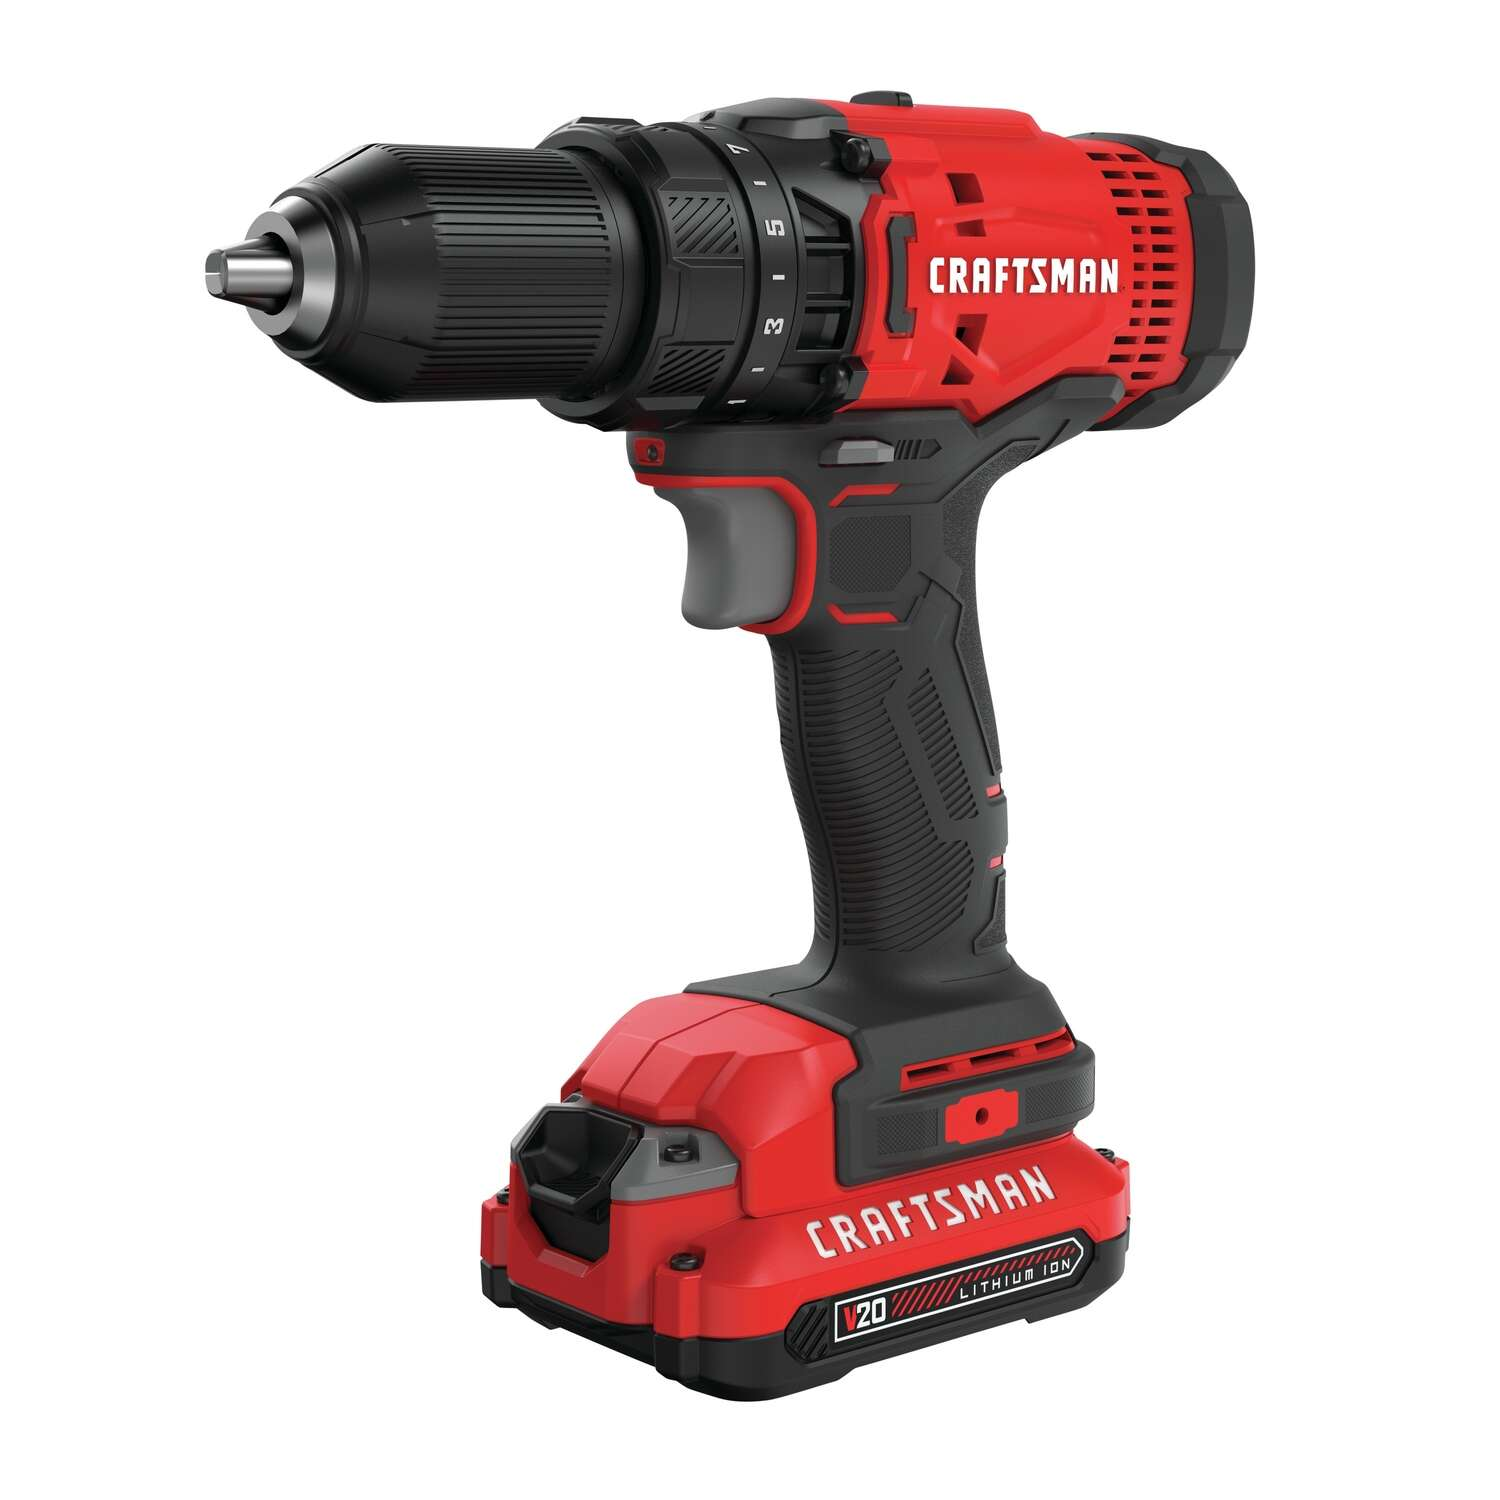 Craftsman 20 V 1/2 in. Brushed Cordless Compact Drill Kit (Battery & Charger)